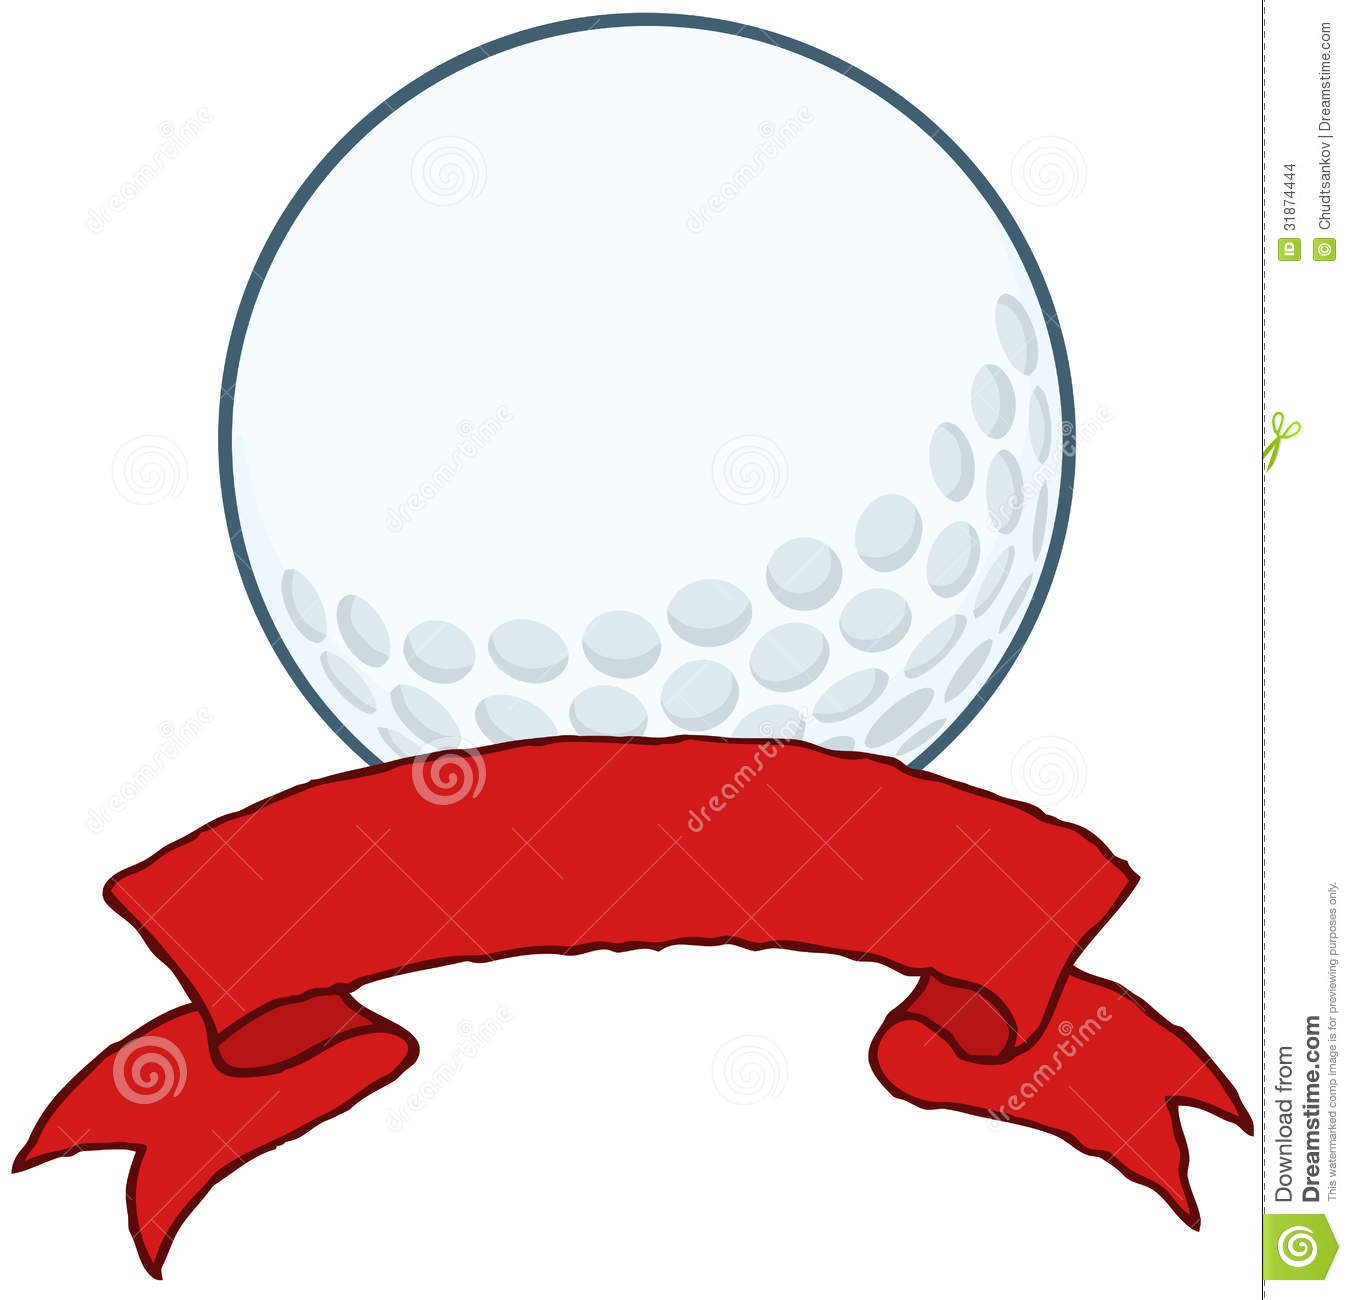 Golf Ball With Red Ribbon Banner Stock Images - Image ... Golf Ball On Tee Clipart